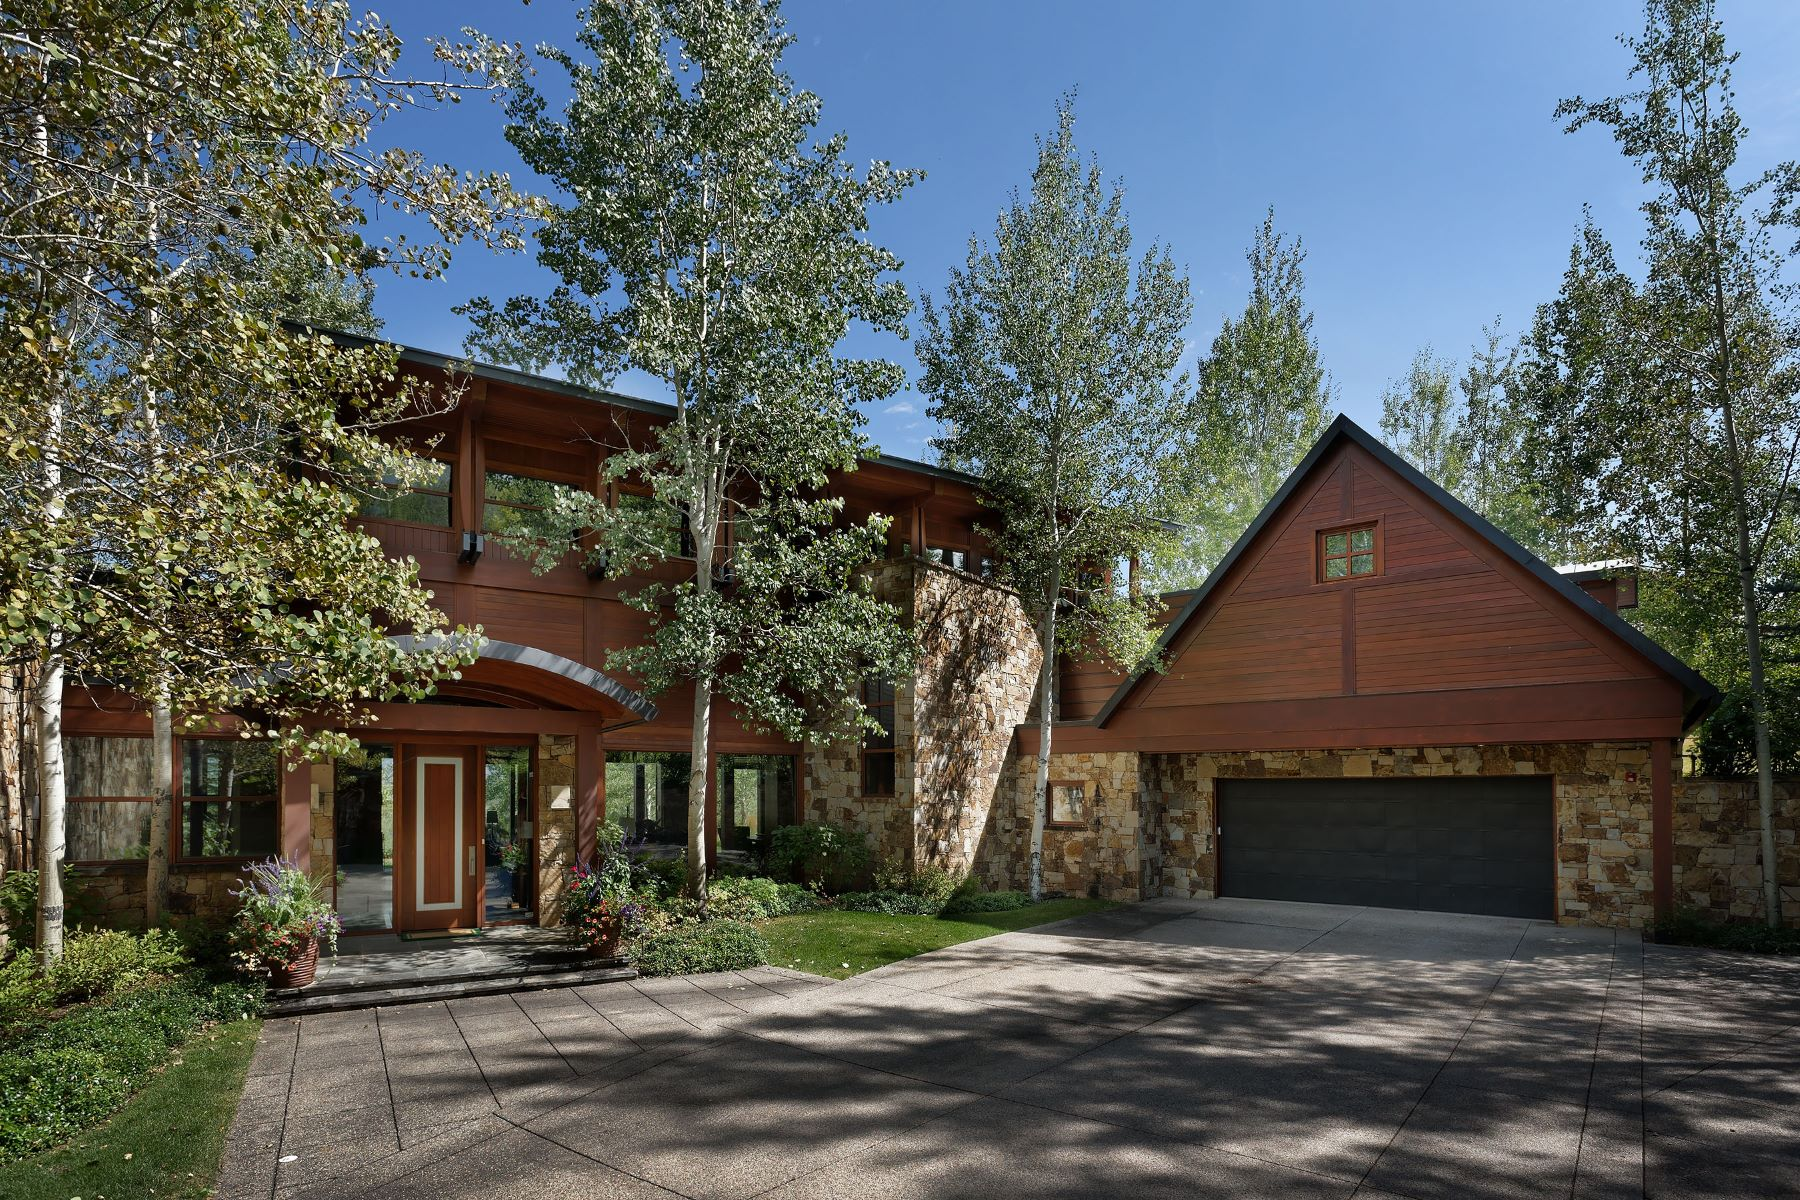 Single Family Home for Sale at Blue Spruce 204 Blue Spruce Lane, Snowmass Village, Colorado, 81615 United States